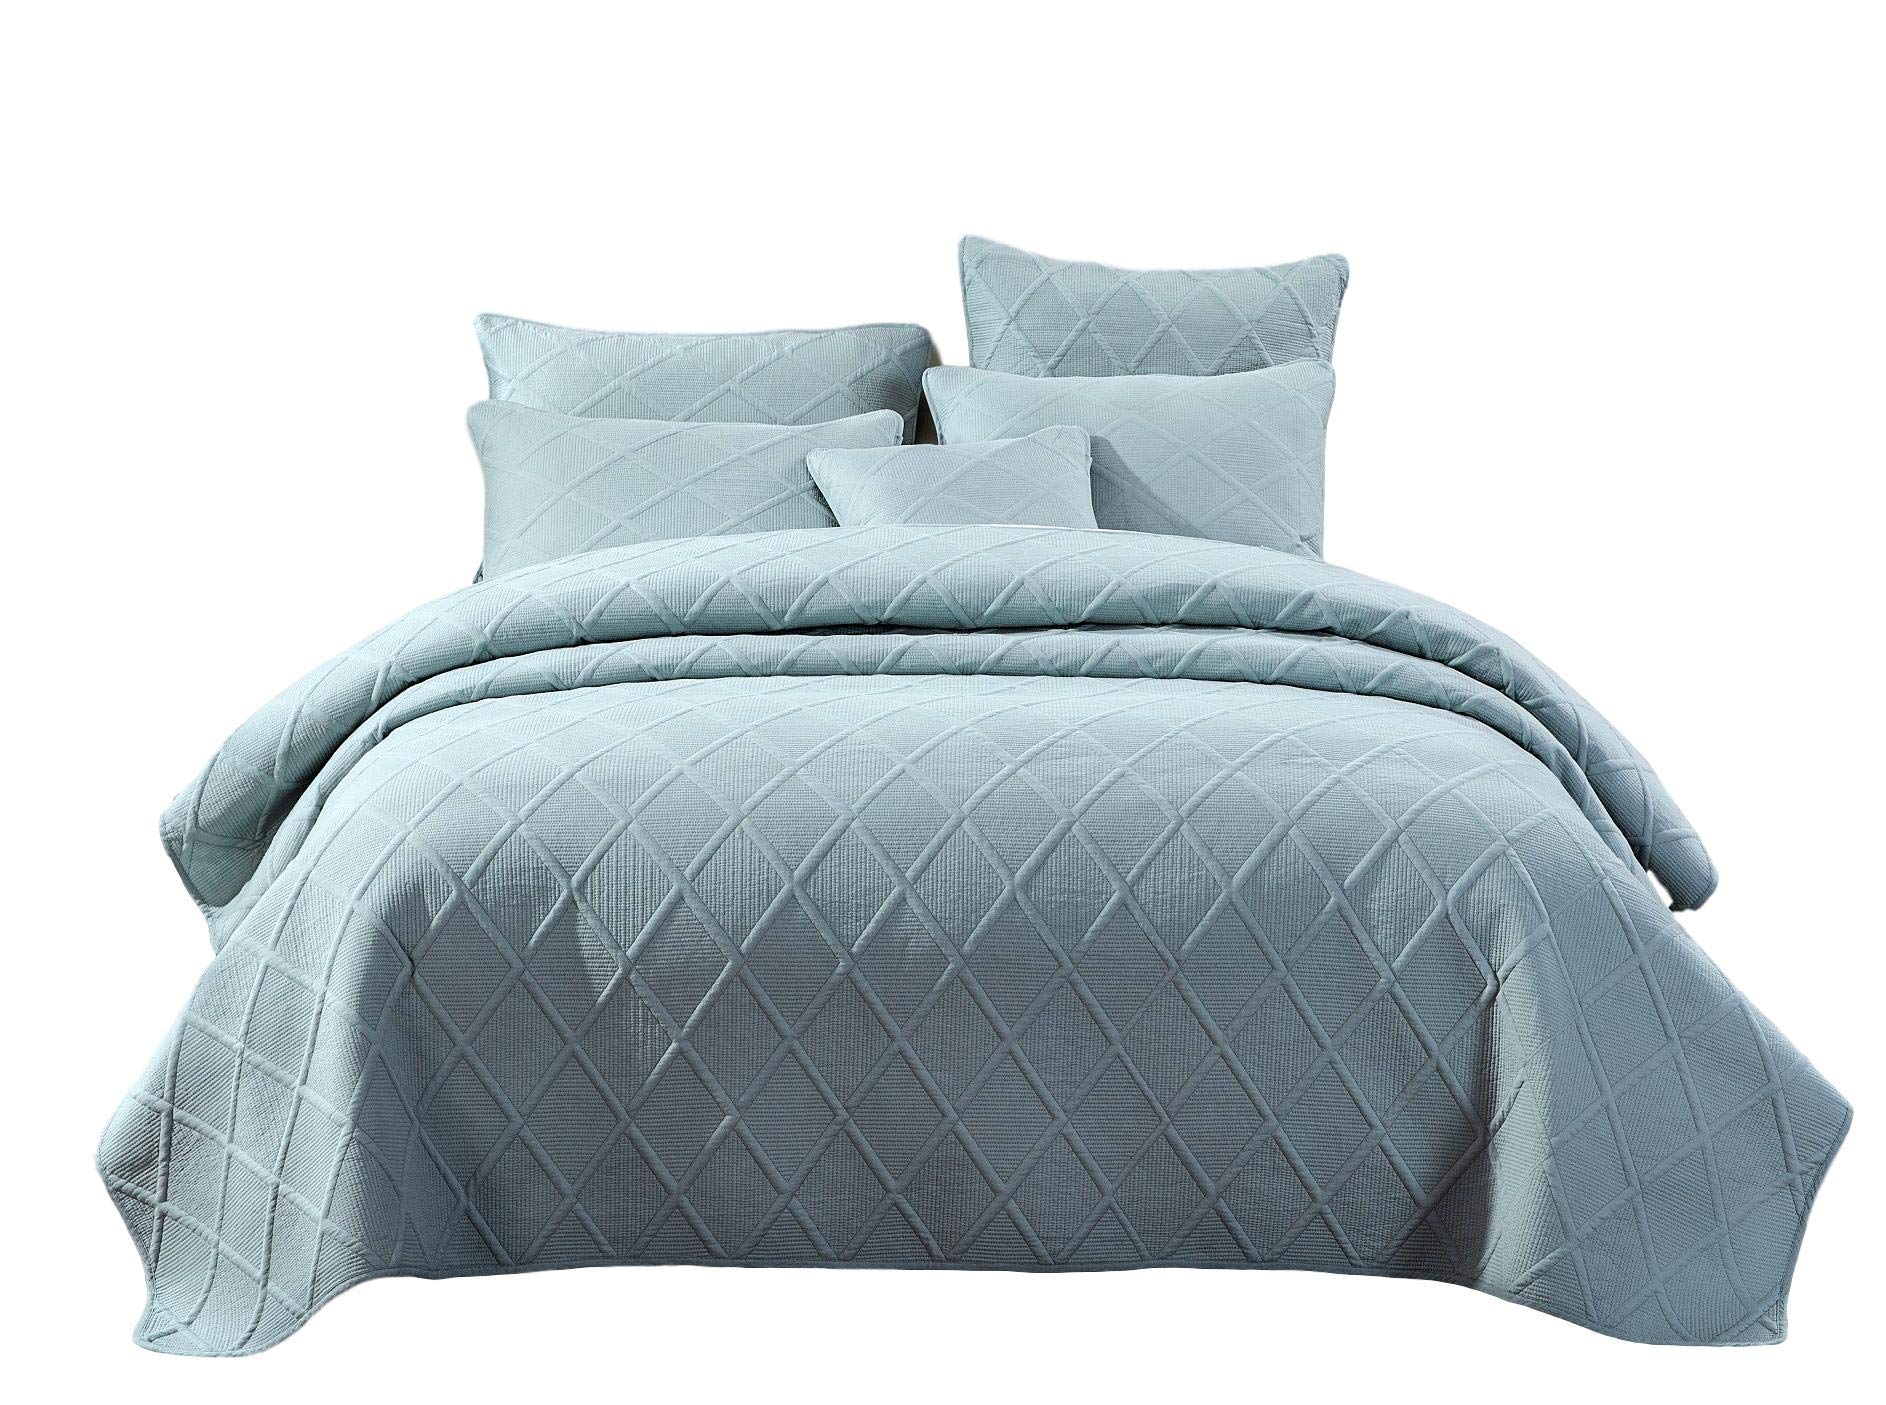 Tache Solid Seafoam Blue Green Soothing Pastel Soft Cotton Diamond Stitch Matelasse Pattern Lightweight Quilted Bedspread 2 Piece Set, Twin